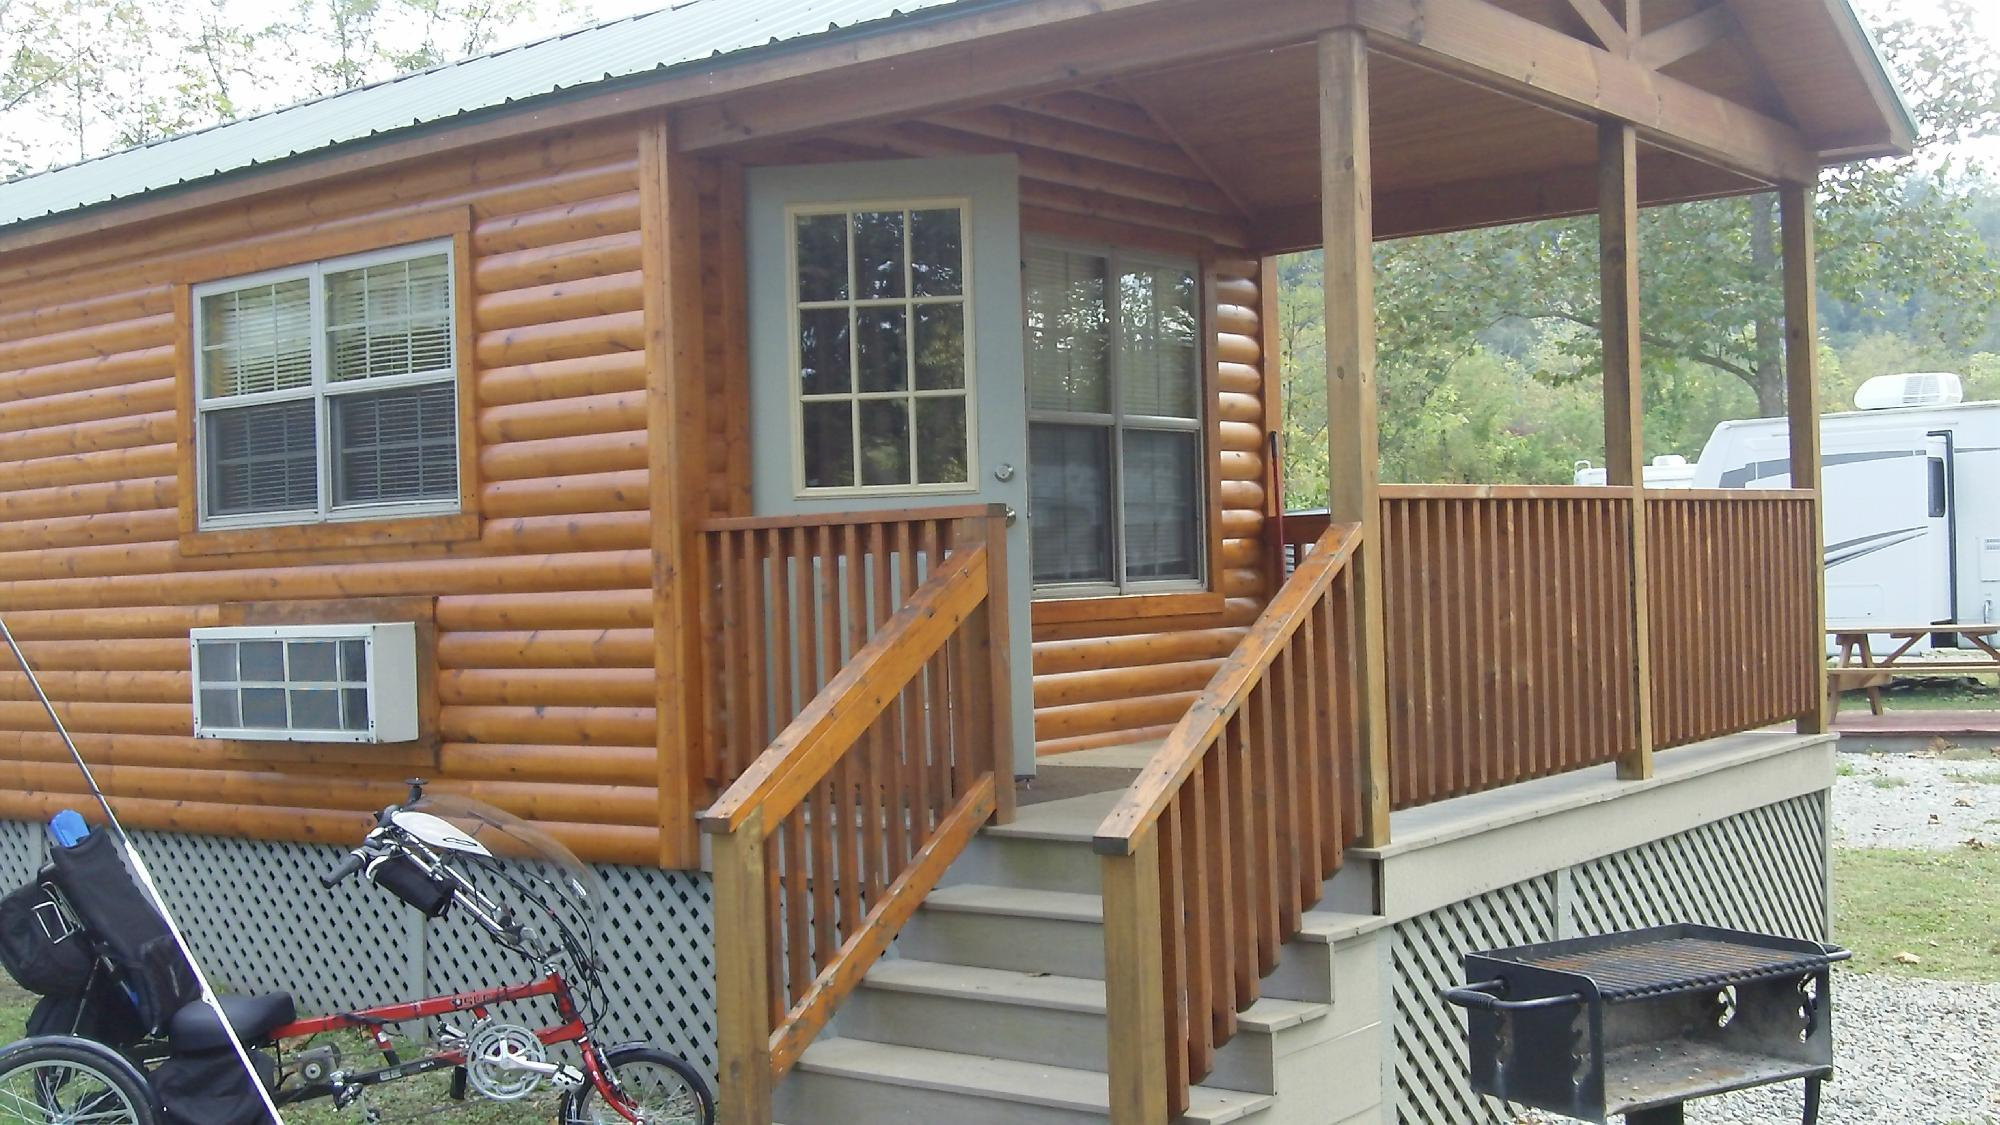 River's Edge Camping & Cabins